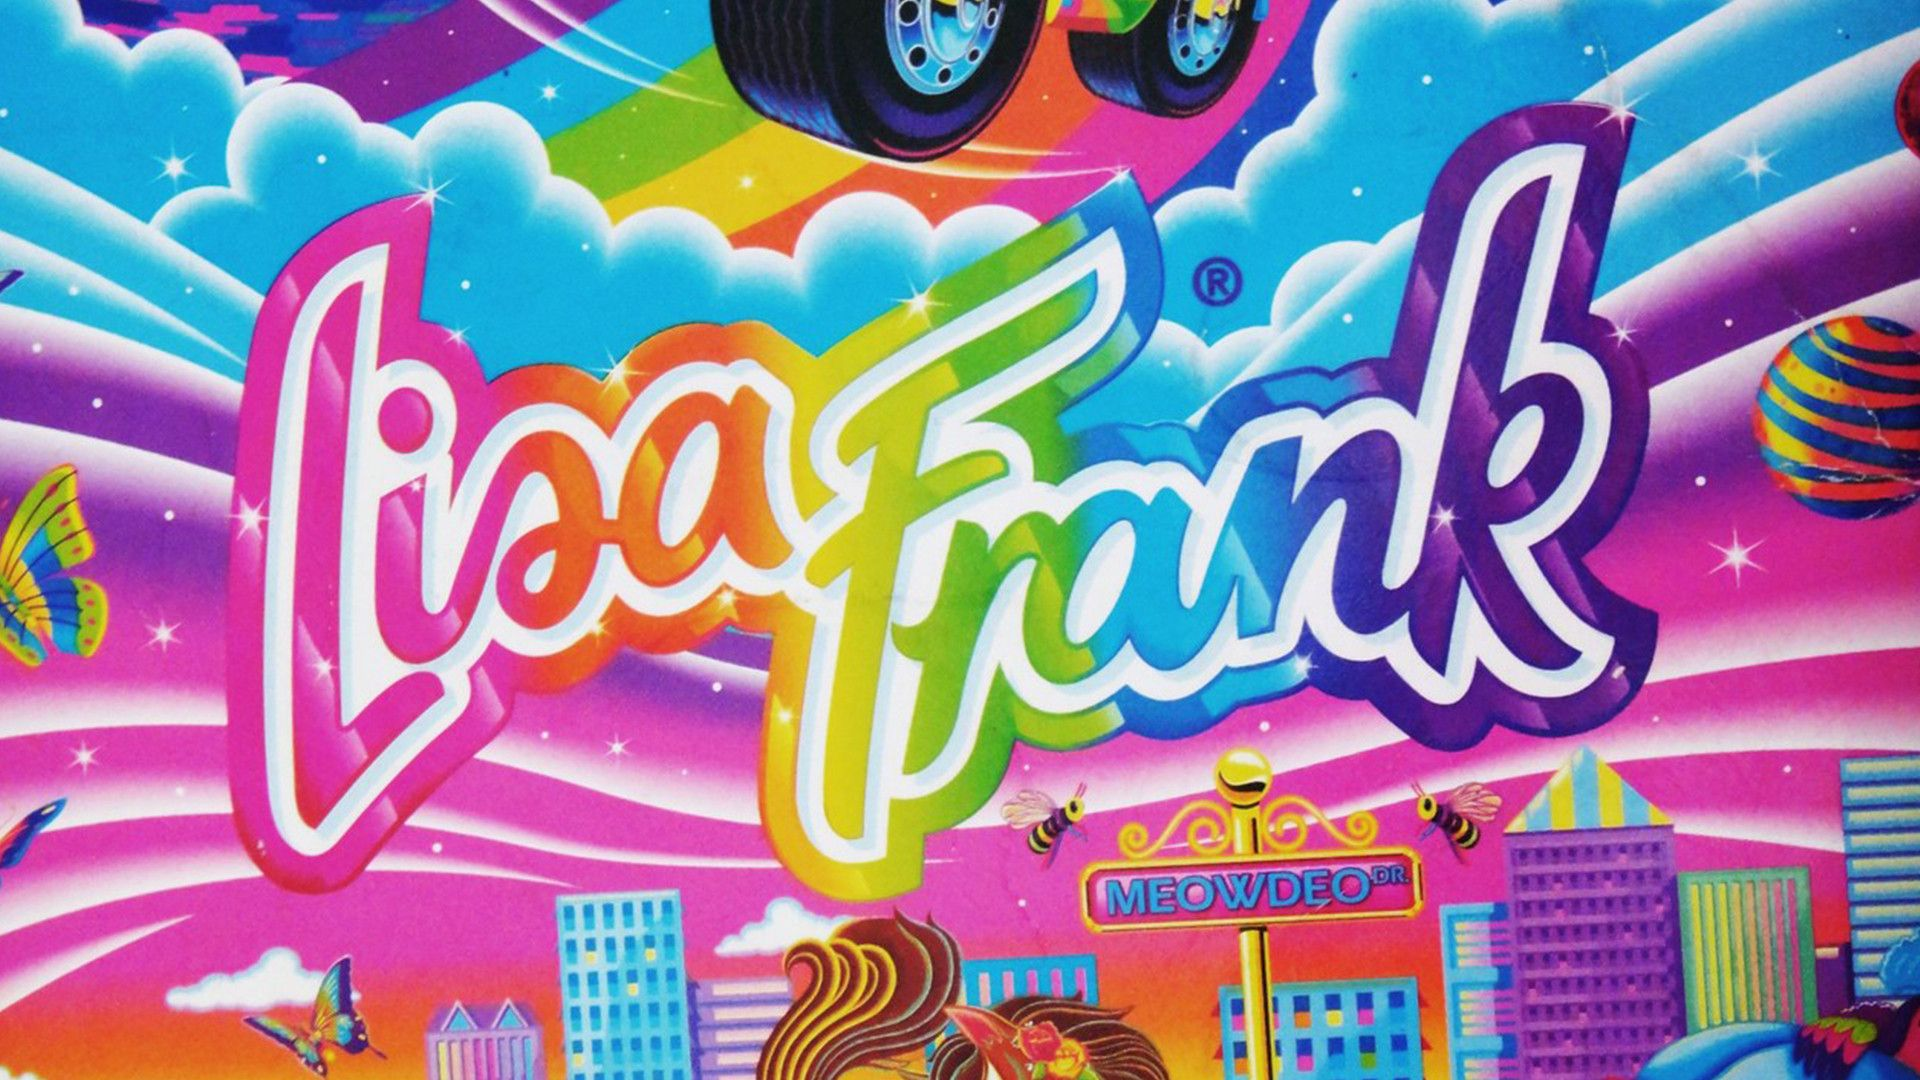 Pc Lisa Frank Wallpapers Era Matskiv